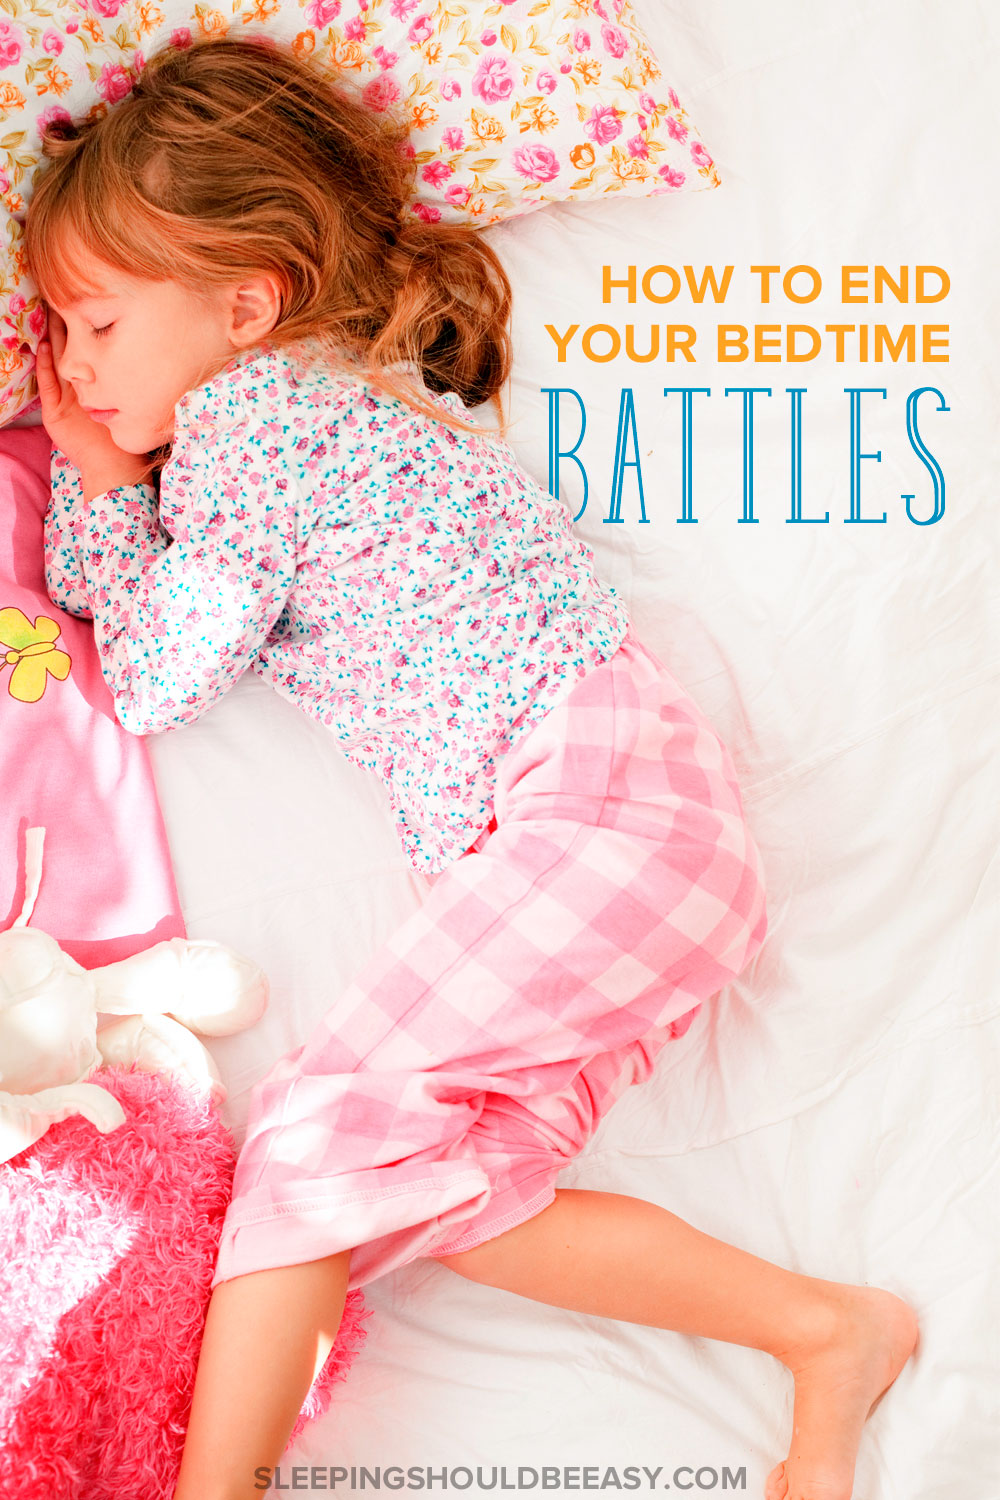 Bedtimes for children can be a challenge for many parents. Here's how to end bedtime battles, from resisting sleep to not staying in their room.